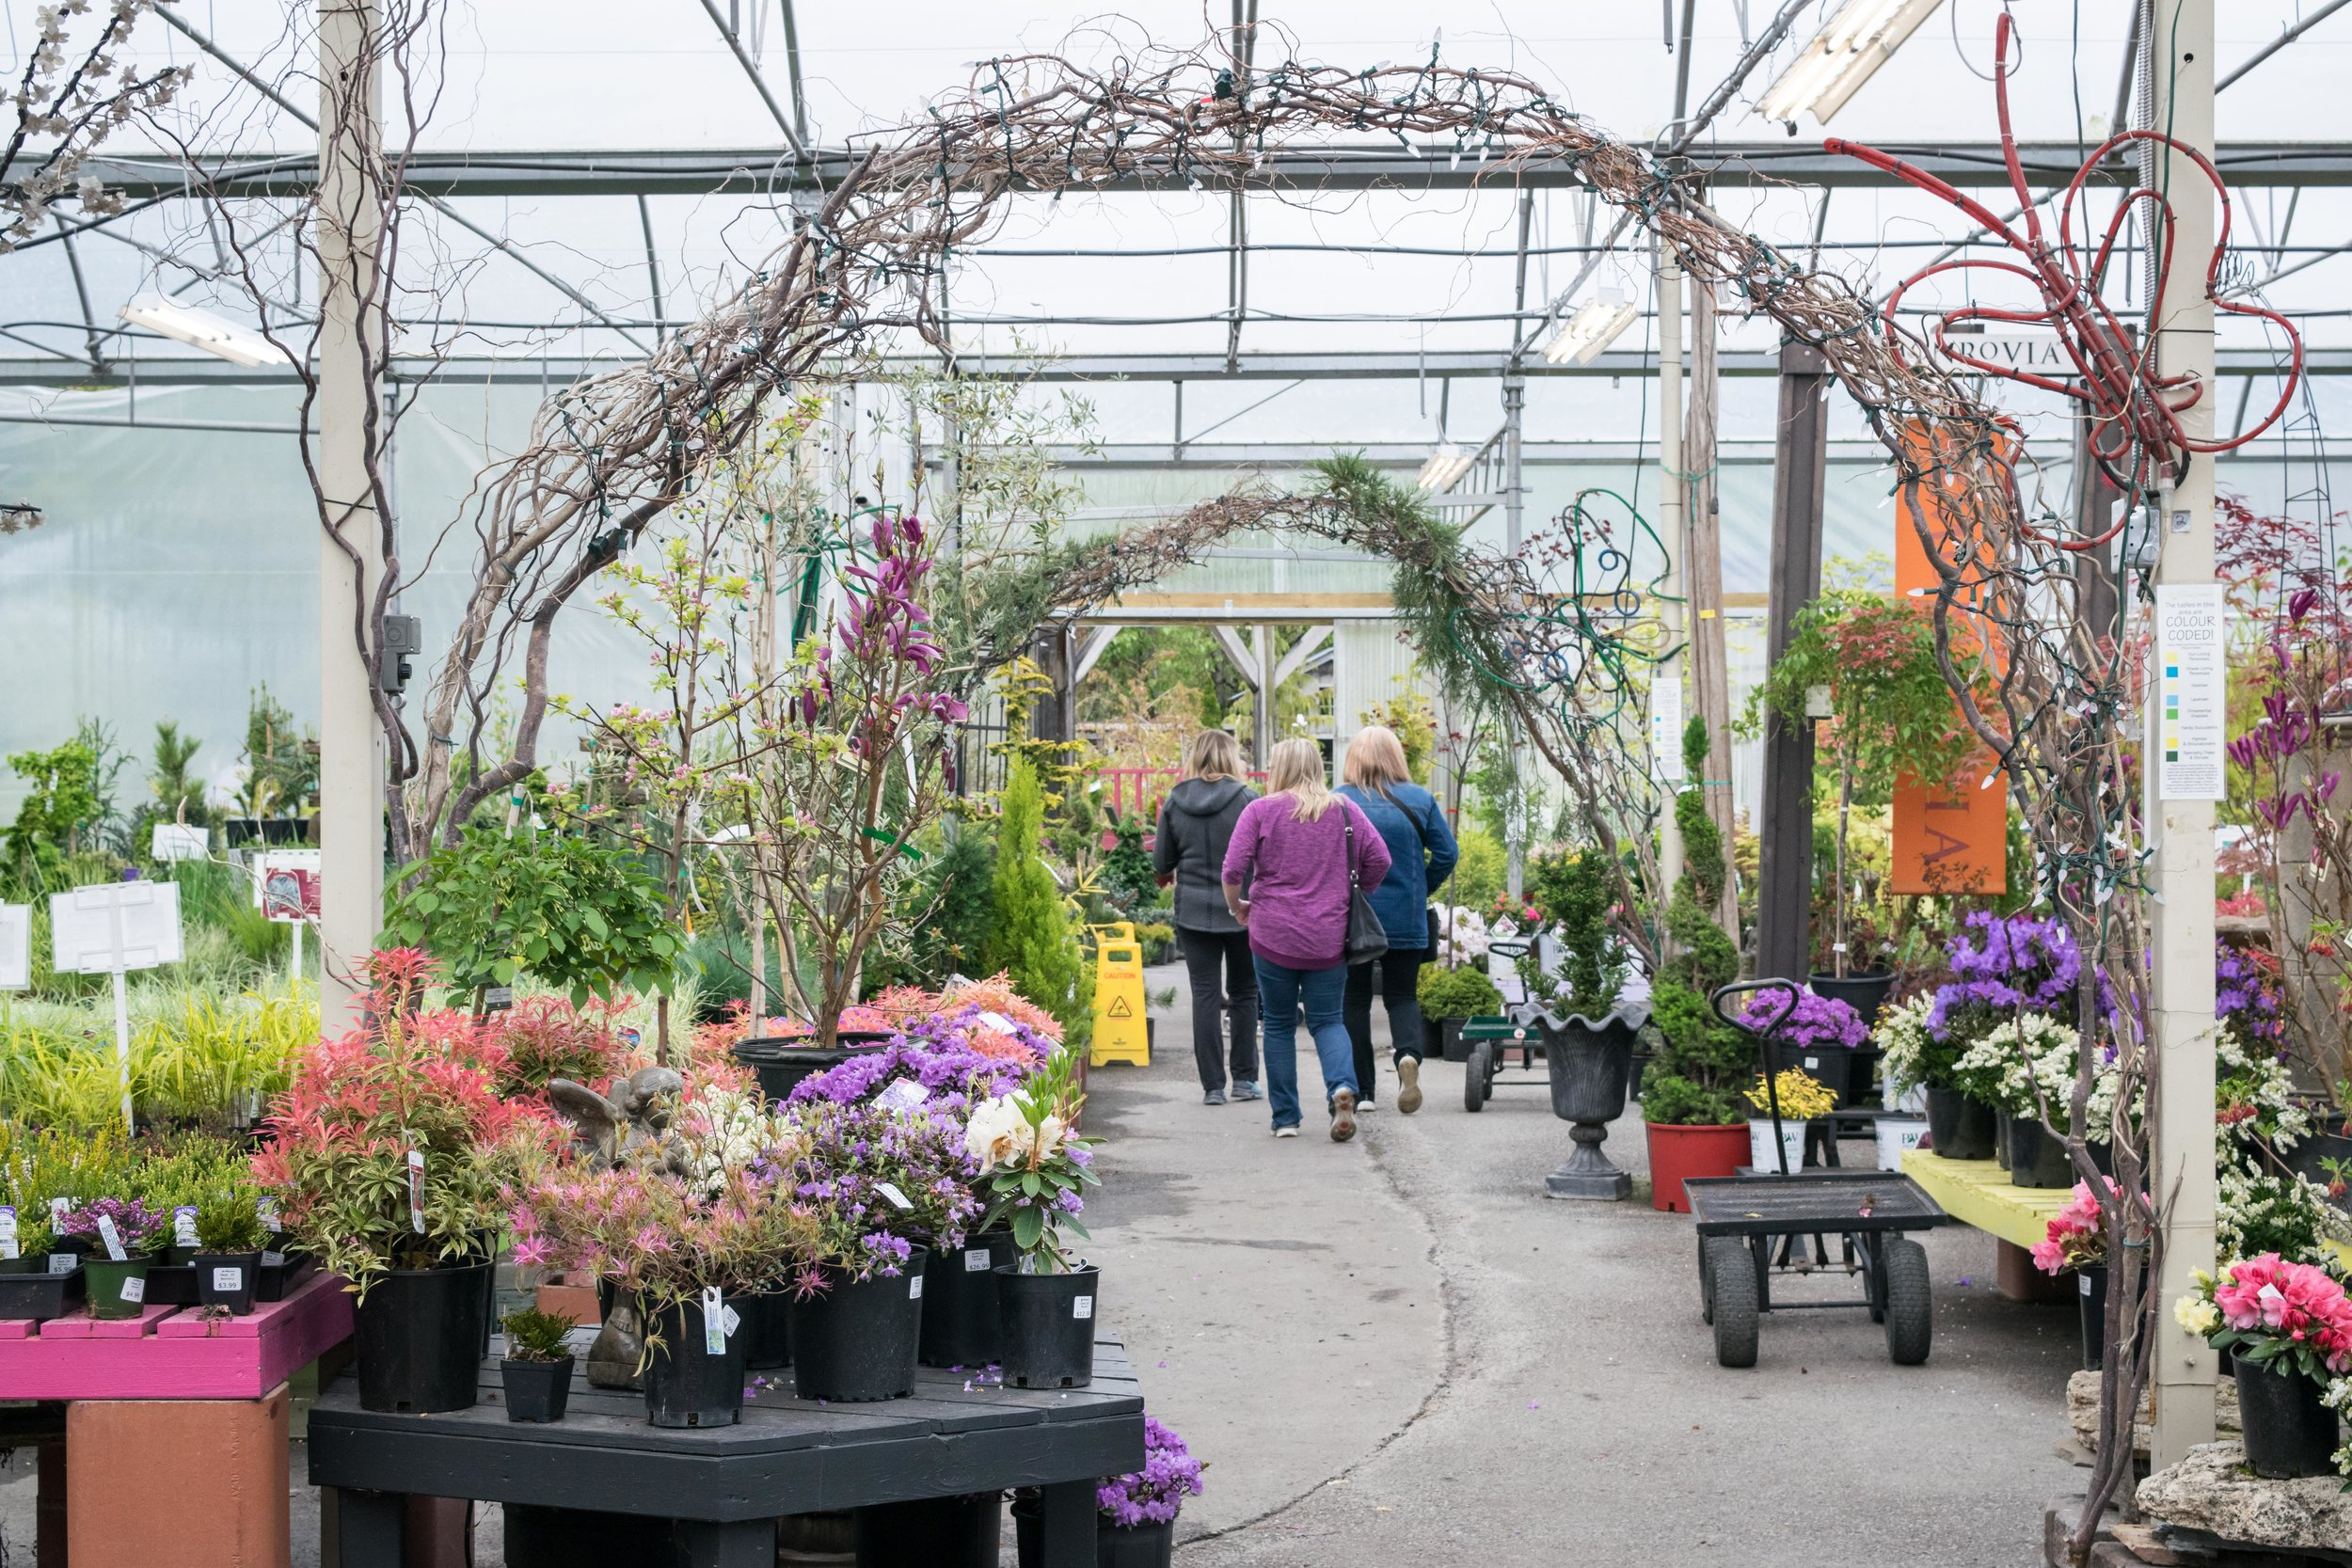 Visiting Minter Country Garden in Chilliwack